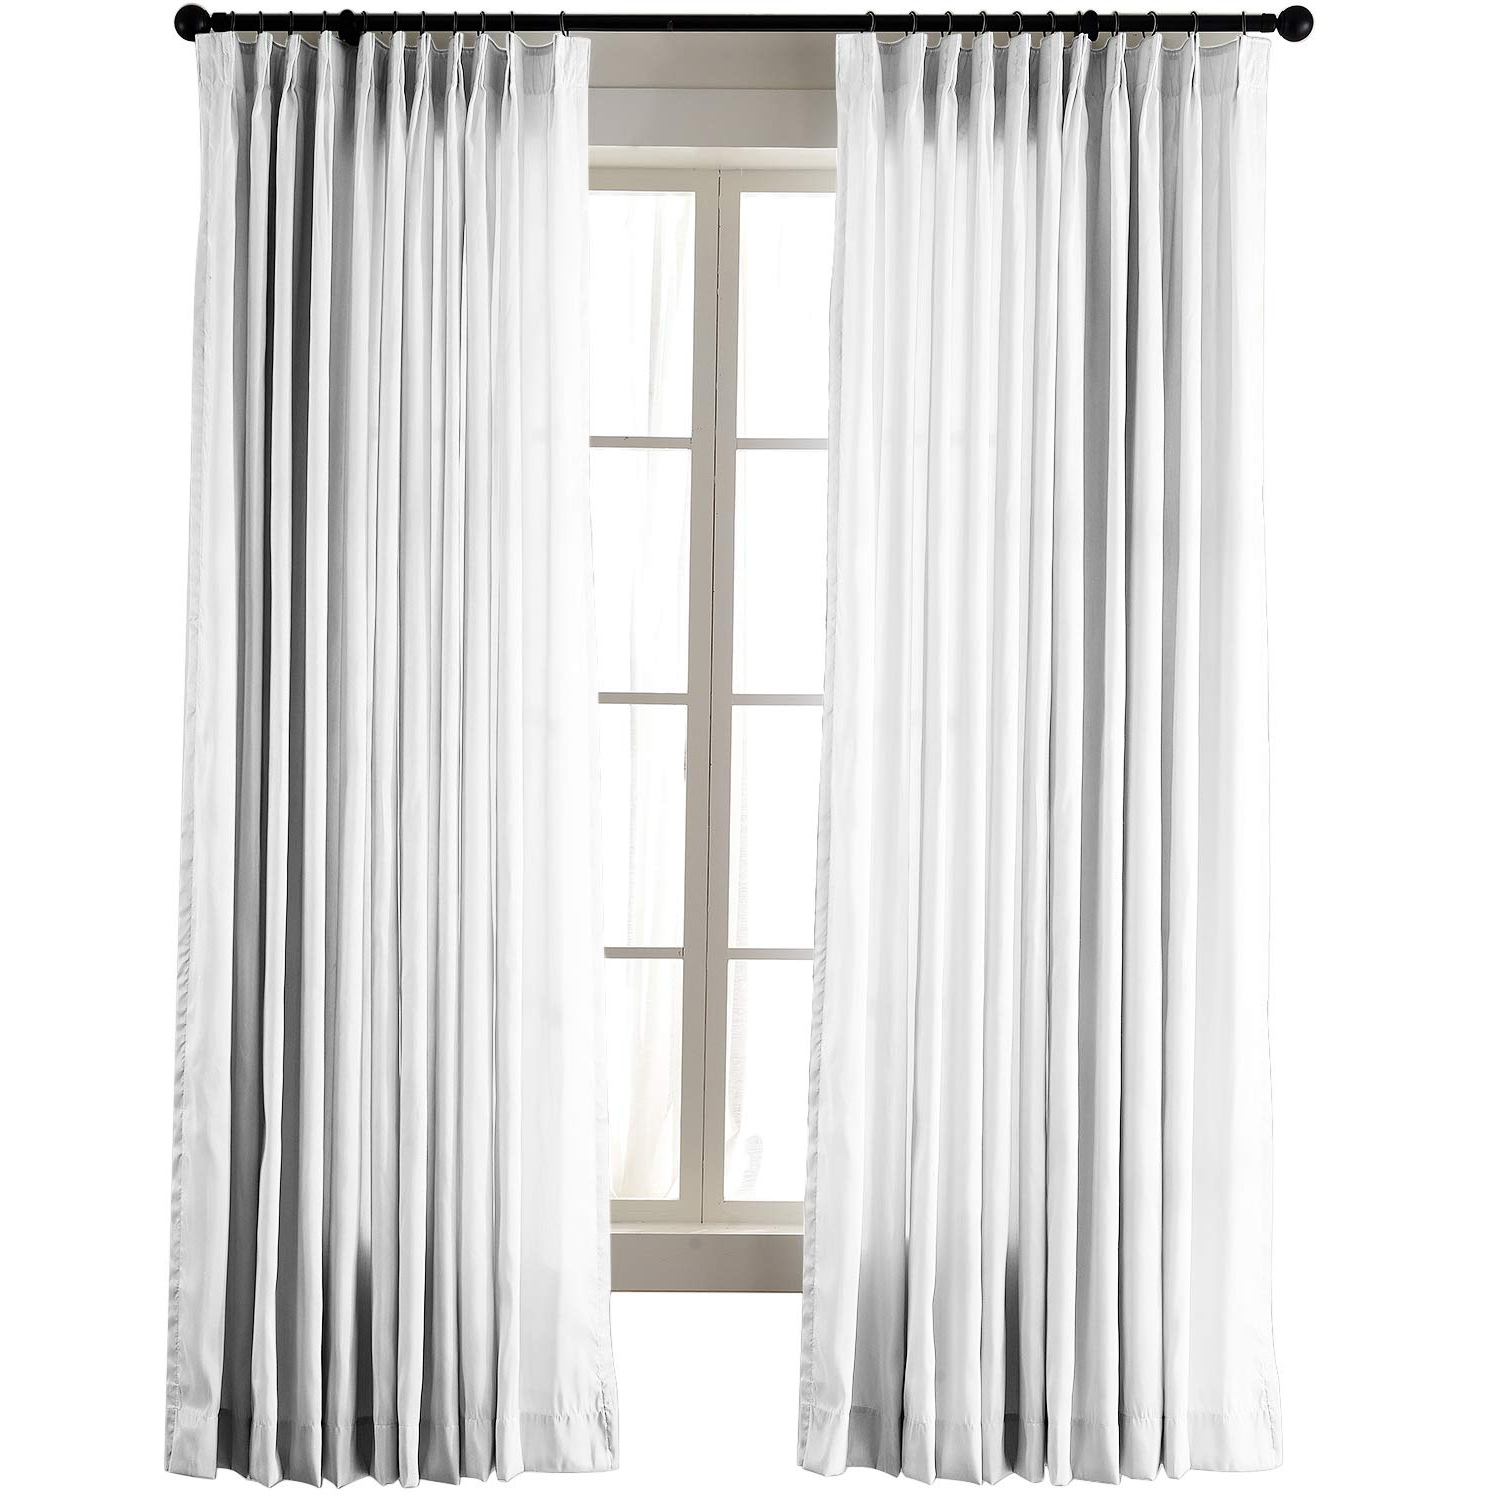 "Fashionable Off White Vintage Faux Textured Silk Curtains Pertaining To Chadmade Vintage Textured Faux Dupioni Silk Drape Curtain Panel Pinch  Pleated 72"" W X 84"" L With White Blackout Lined, White Ivory (View 11 of 20)"